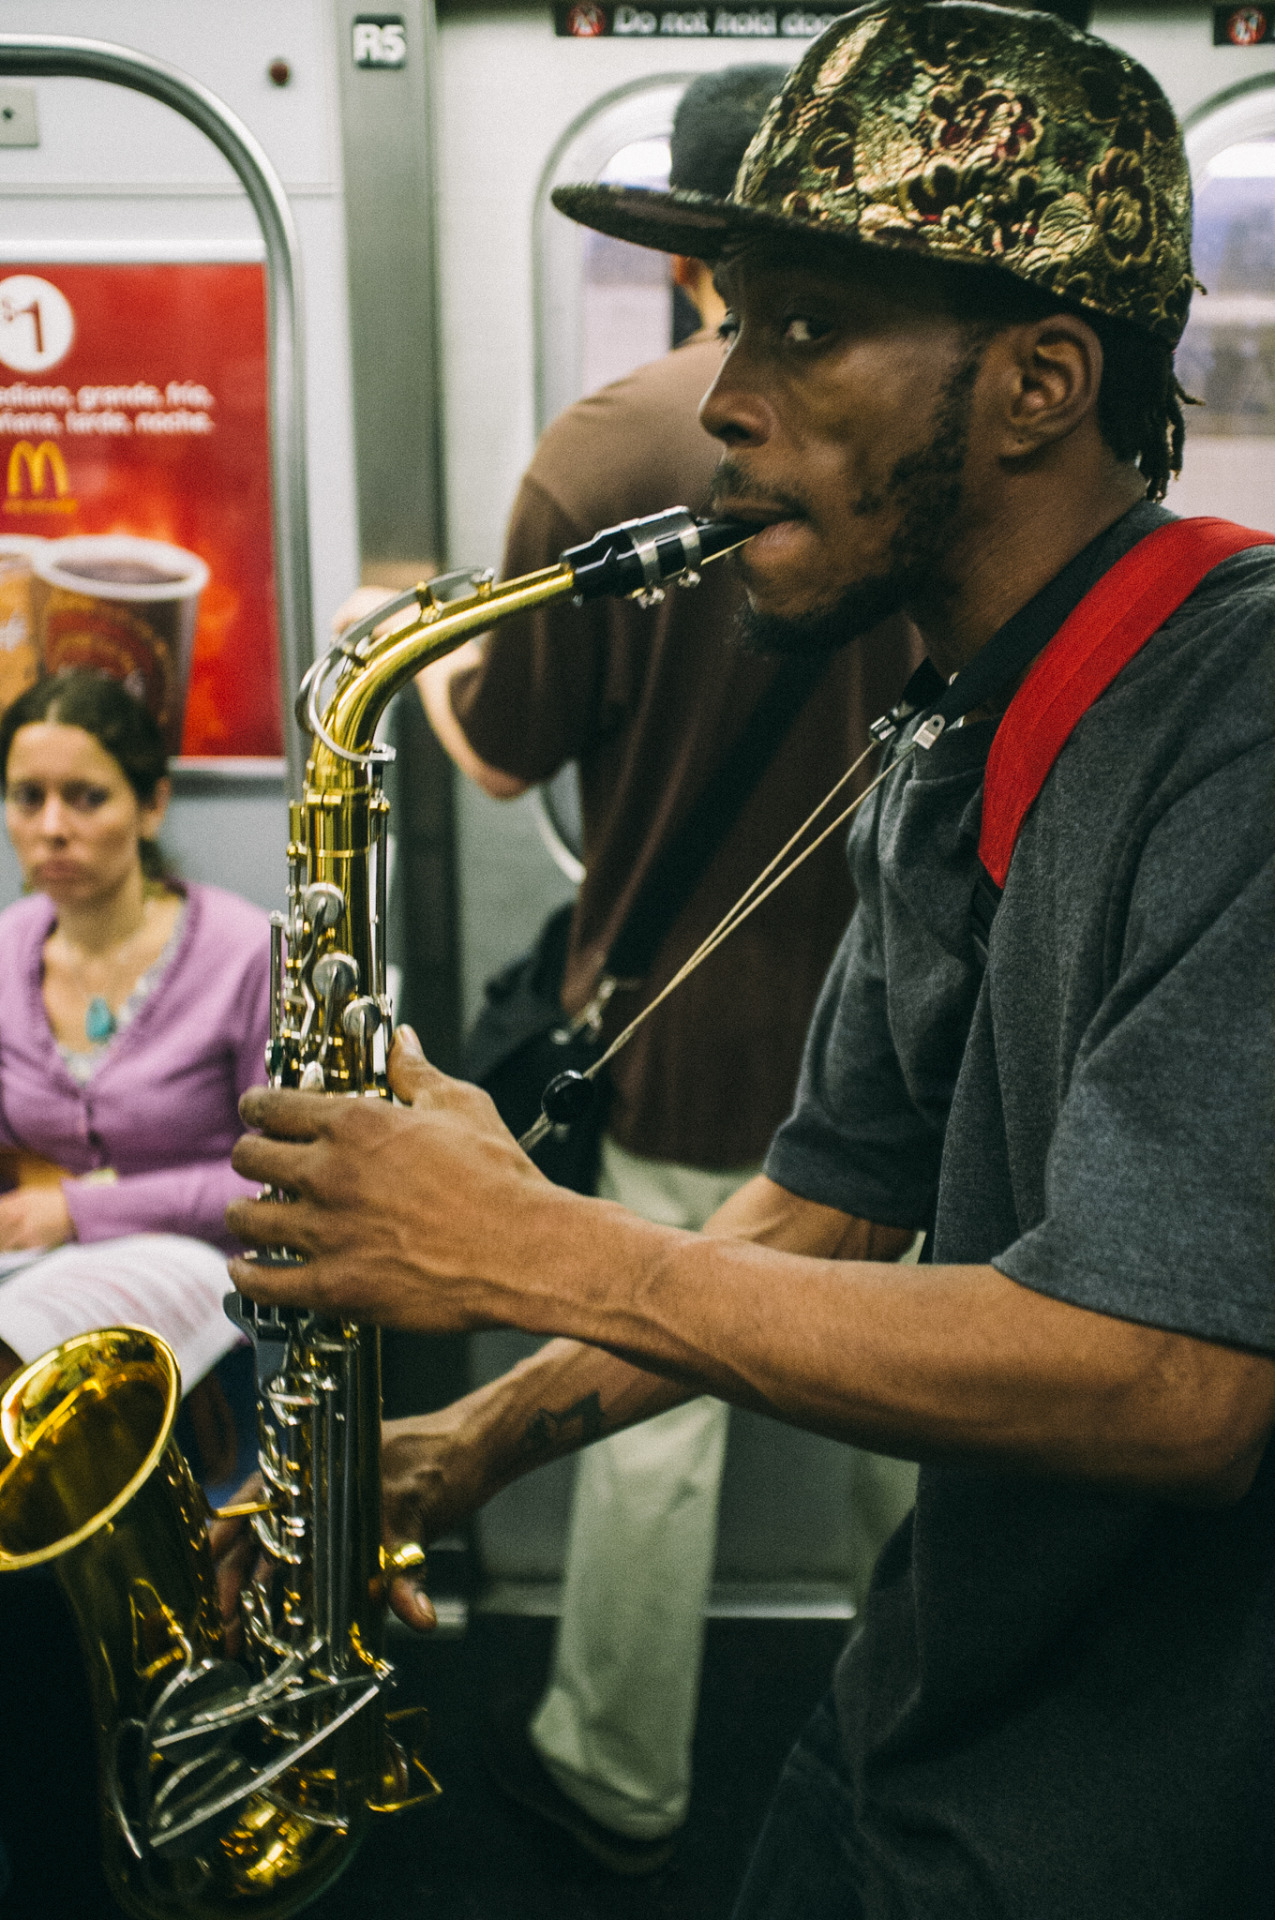 135. Subway Sax    www.willoharephotography.com